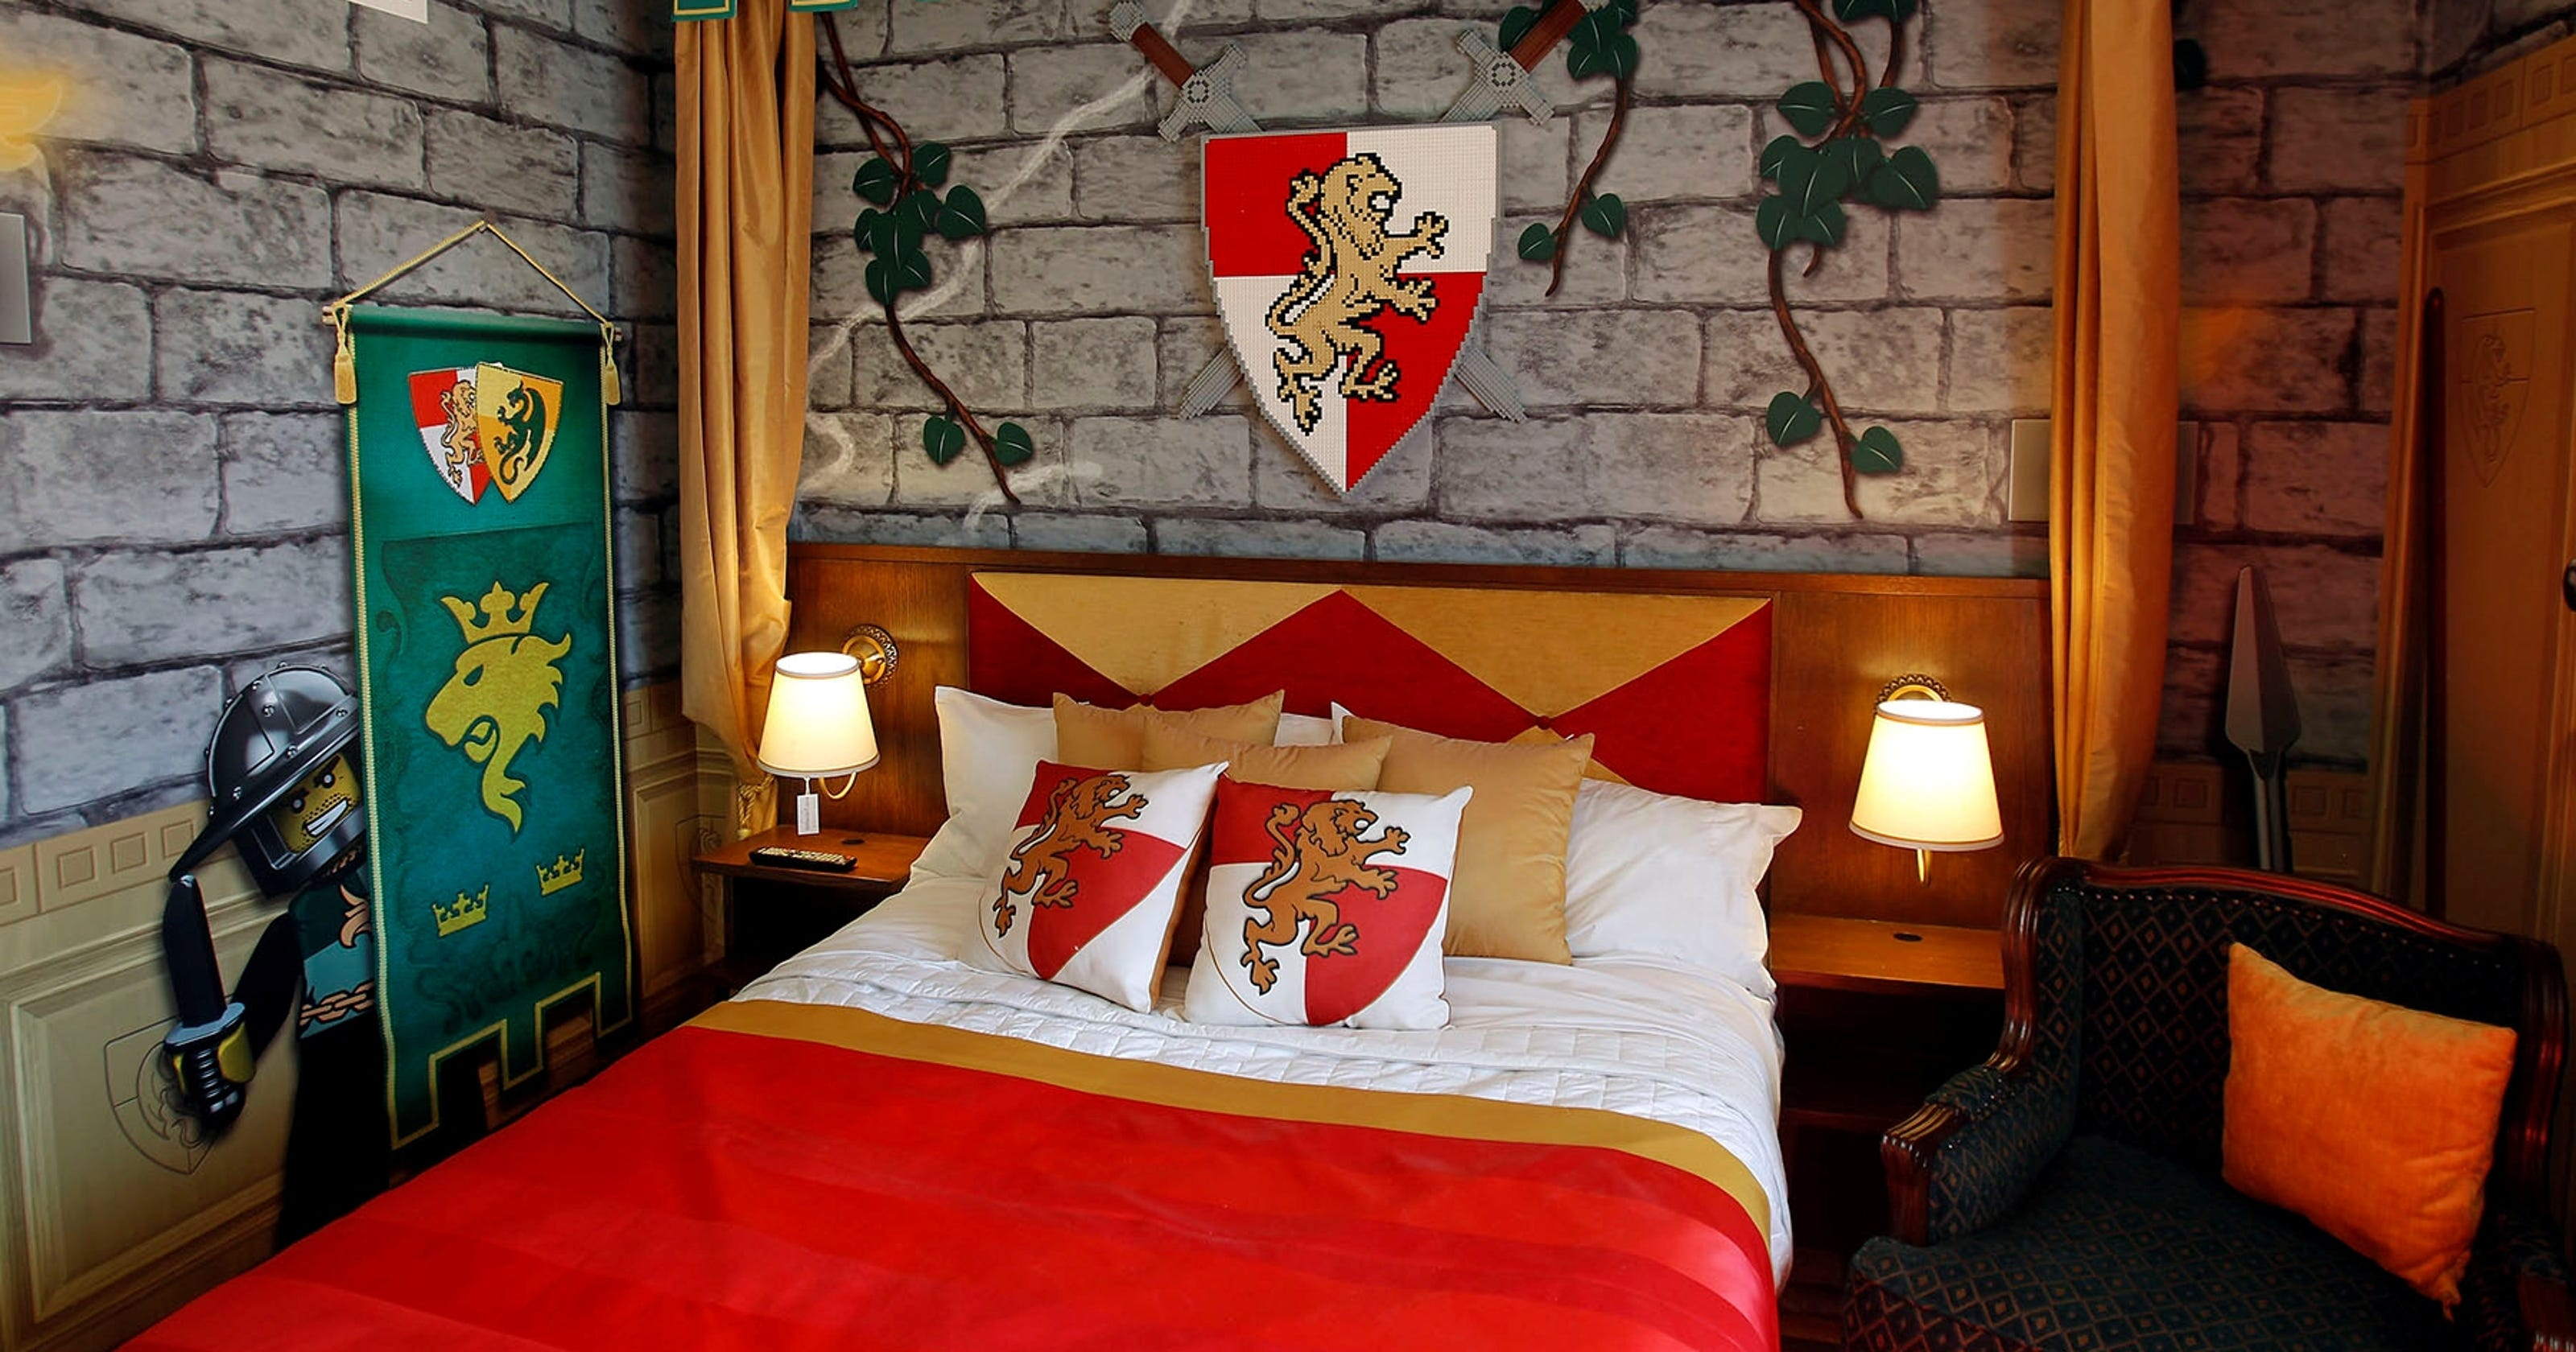 Beds And Bricks Legoland Hotel Caters To Devotees